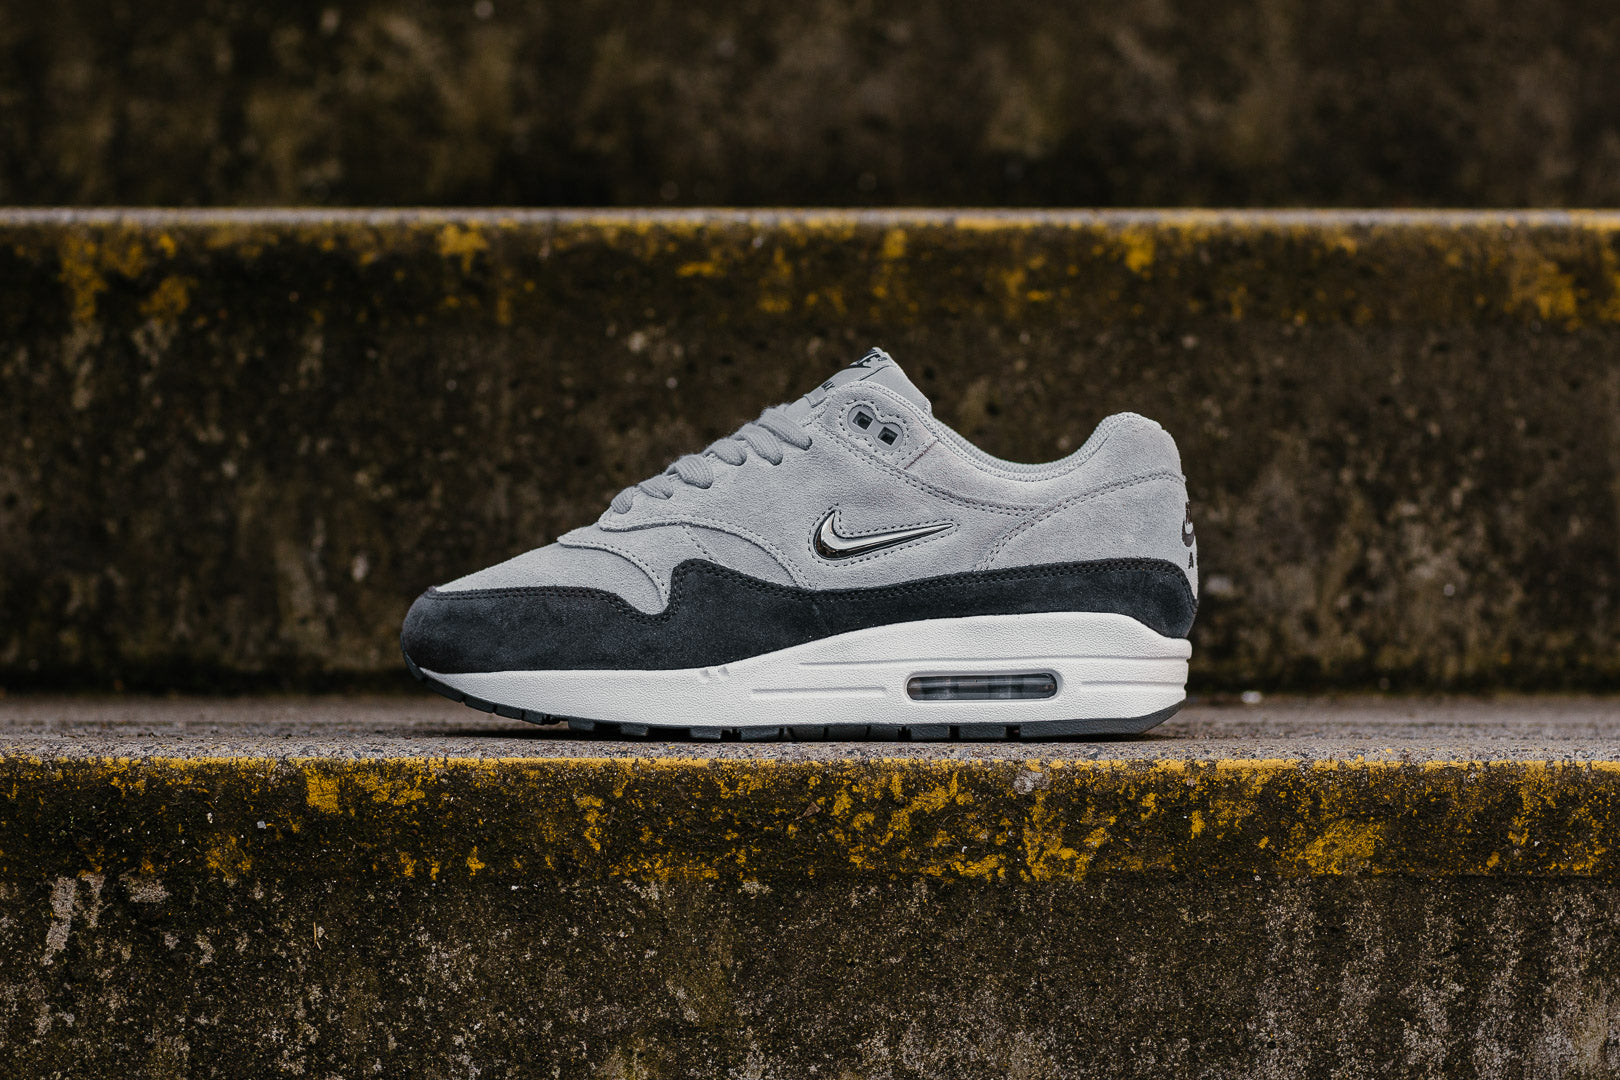 4d5d093b20 ... Jewel Wolf Grey Release Date Nike Air Max 1 Premium SC WMNS AA0512-002,  Running, Nike - SOLEHEAVEN ...